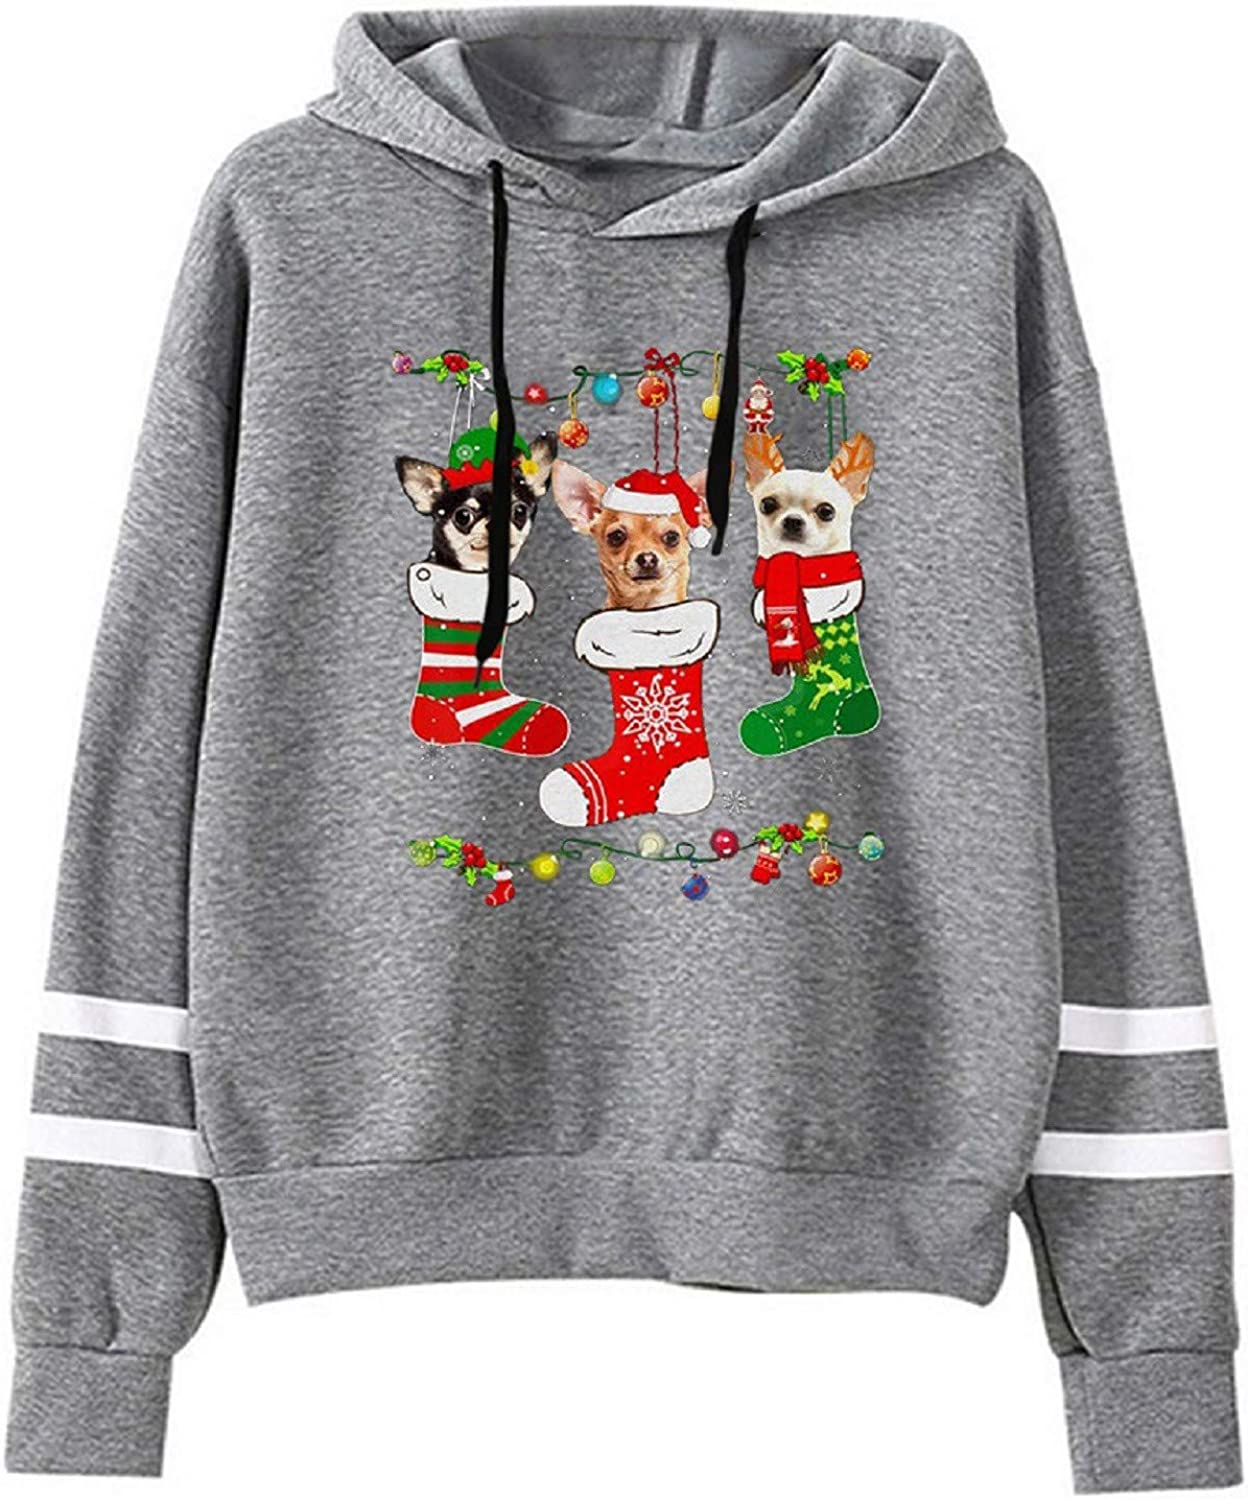 Women's Sweatshirts Casual Christmas Lovely Dog Print Crewneck Hooded Long Sleeves Loose Pullover Hoodies Tops Blouse